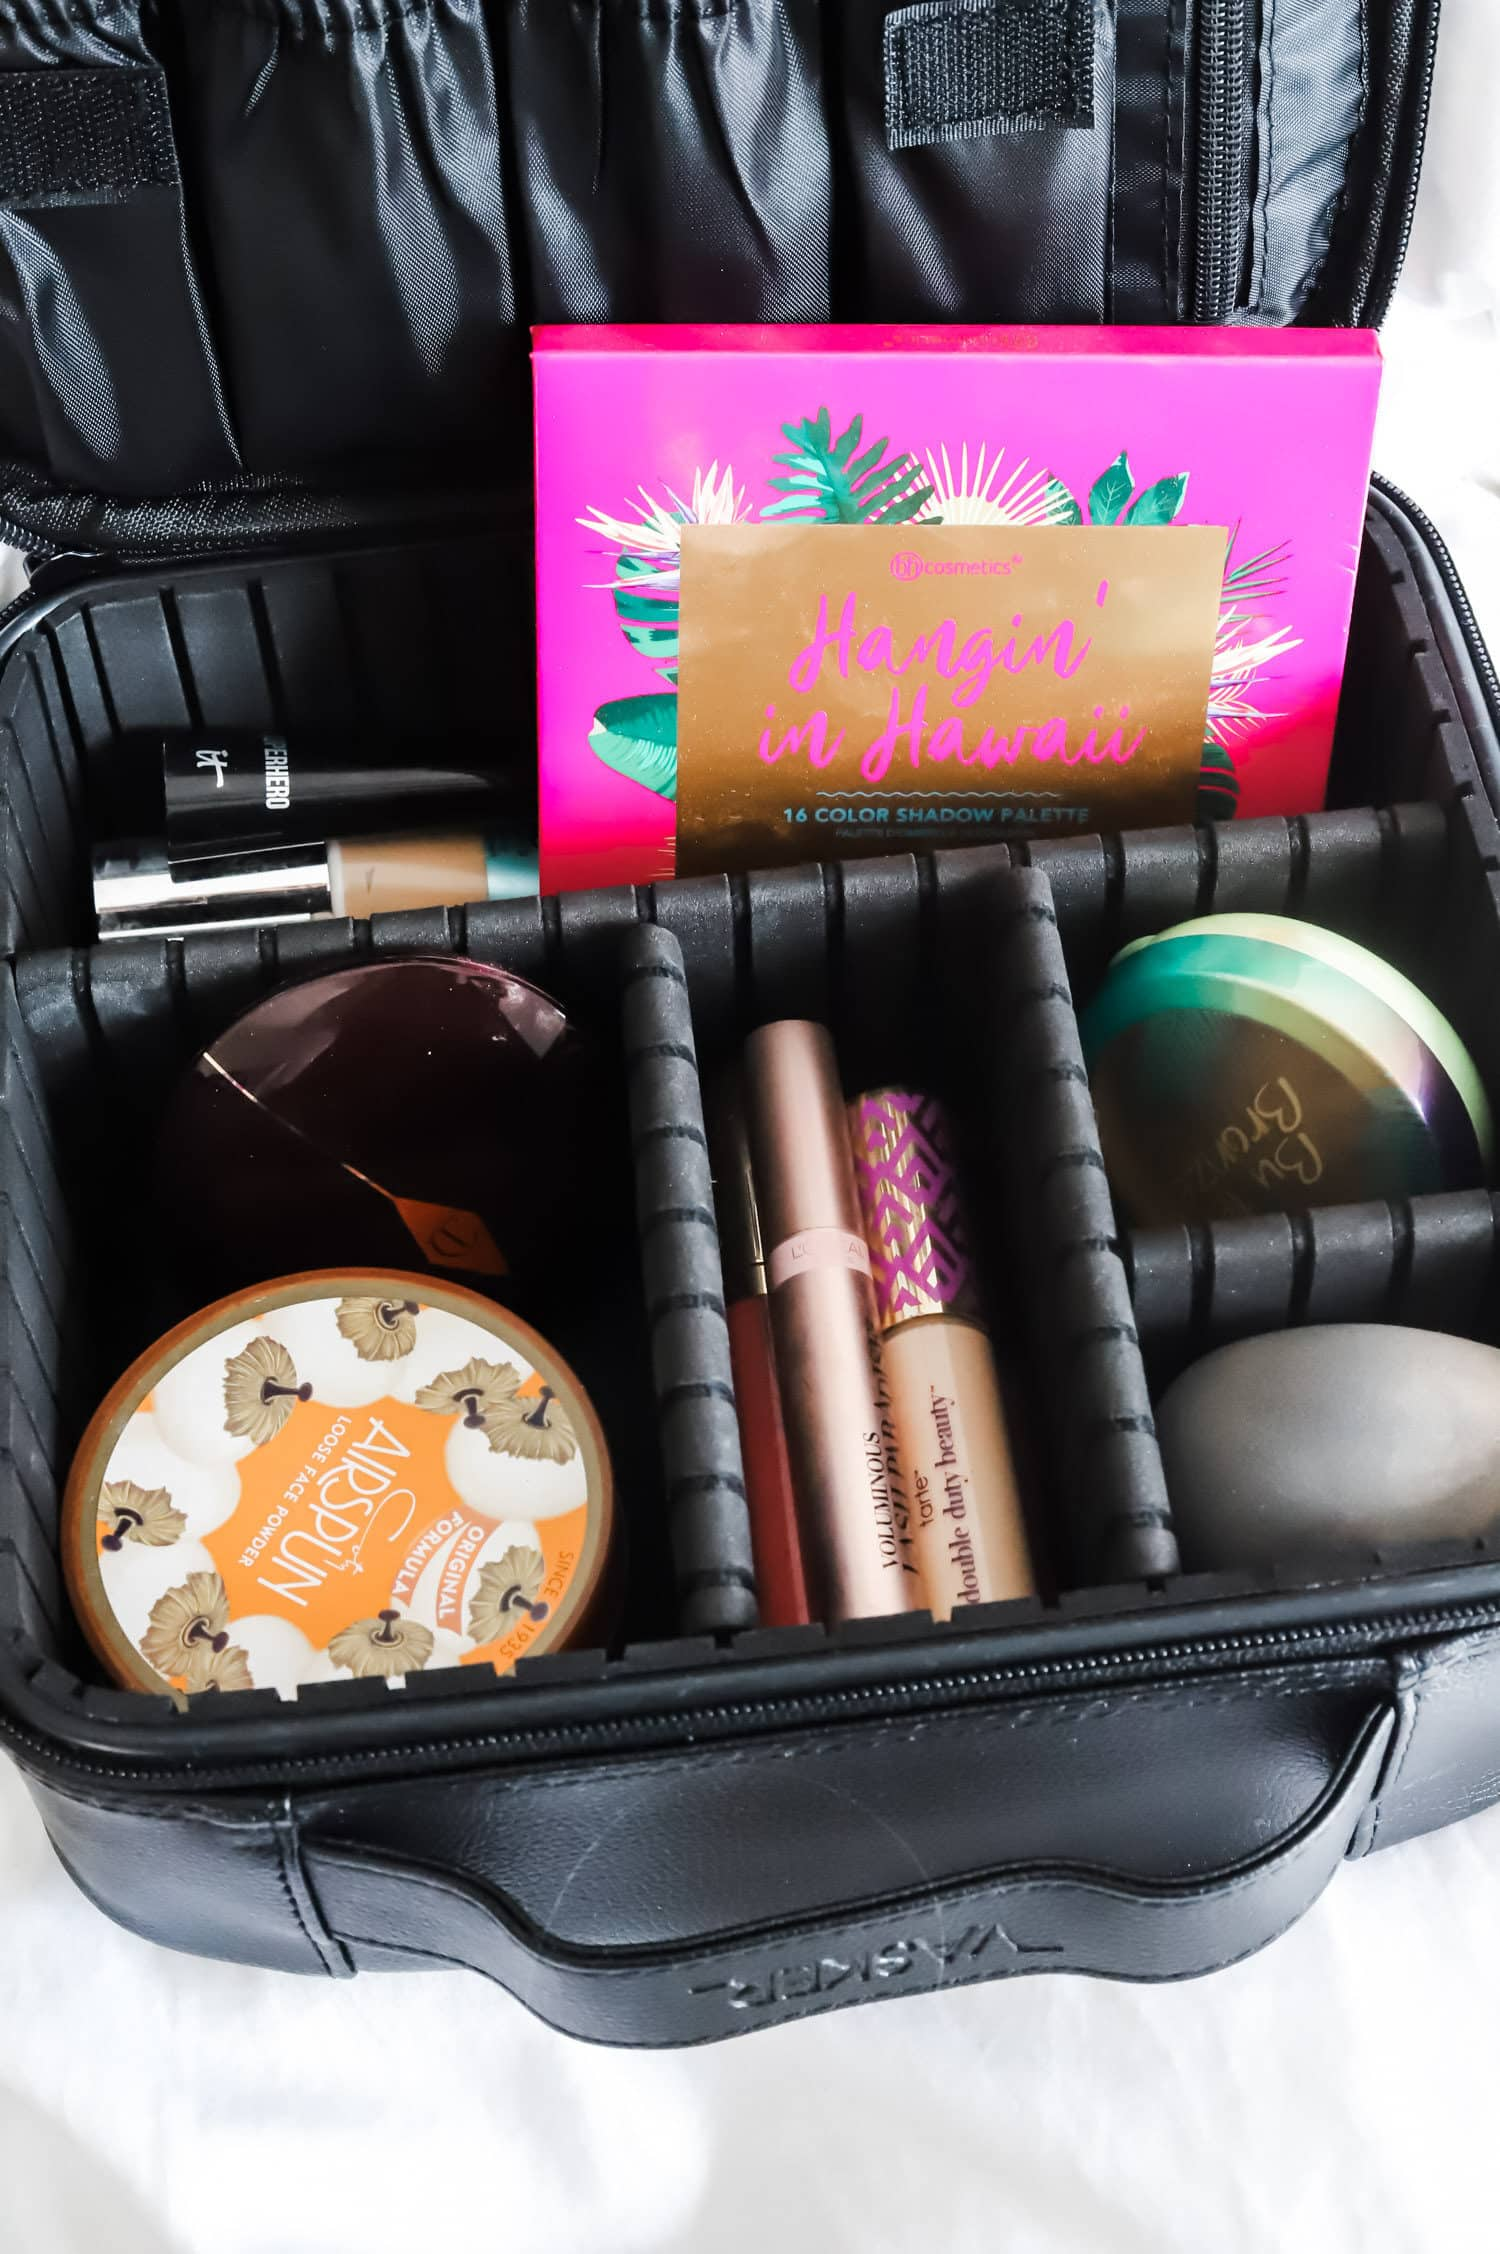 What to Buy On Amazon: the top beauty and fashion bestsellers from Amazon Prime - including the best zip-up travel beauty and makeup organizer under $20! | Orlando, Florida beauty and fashion blogger Ashley Brooke Nicholas